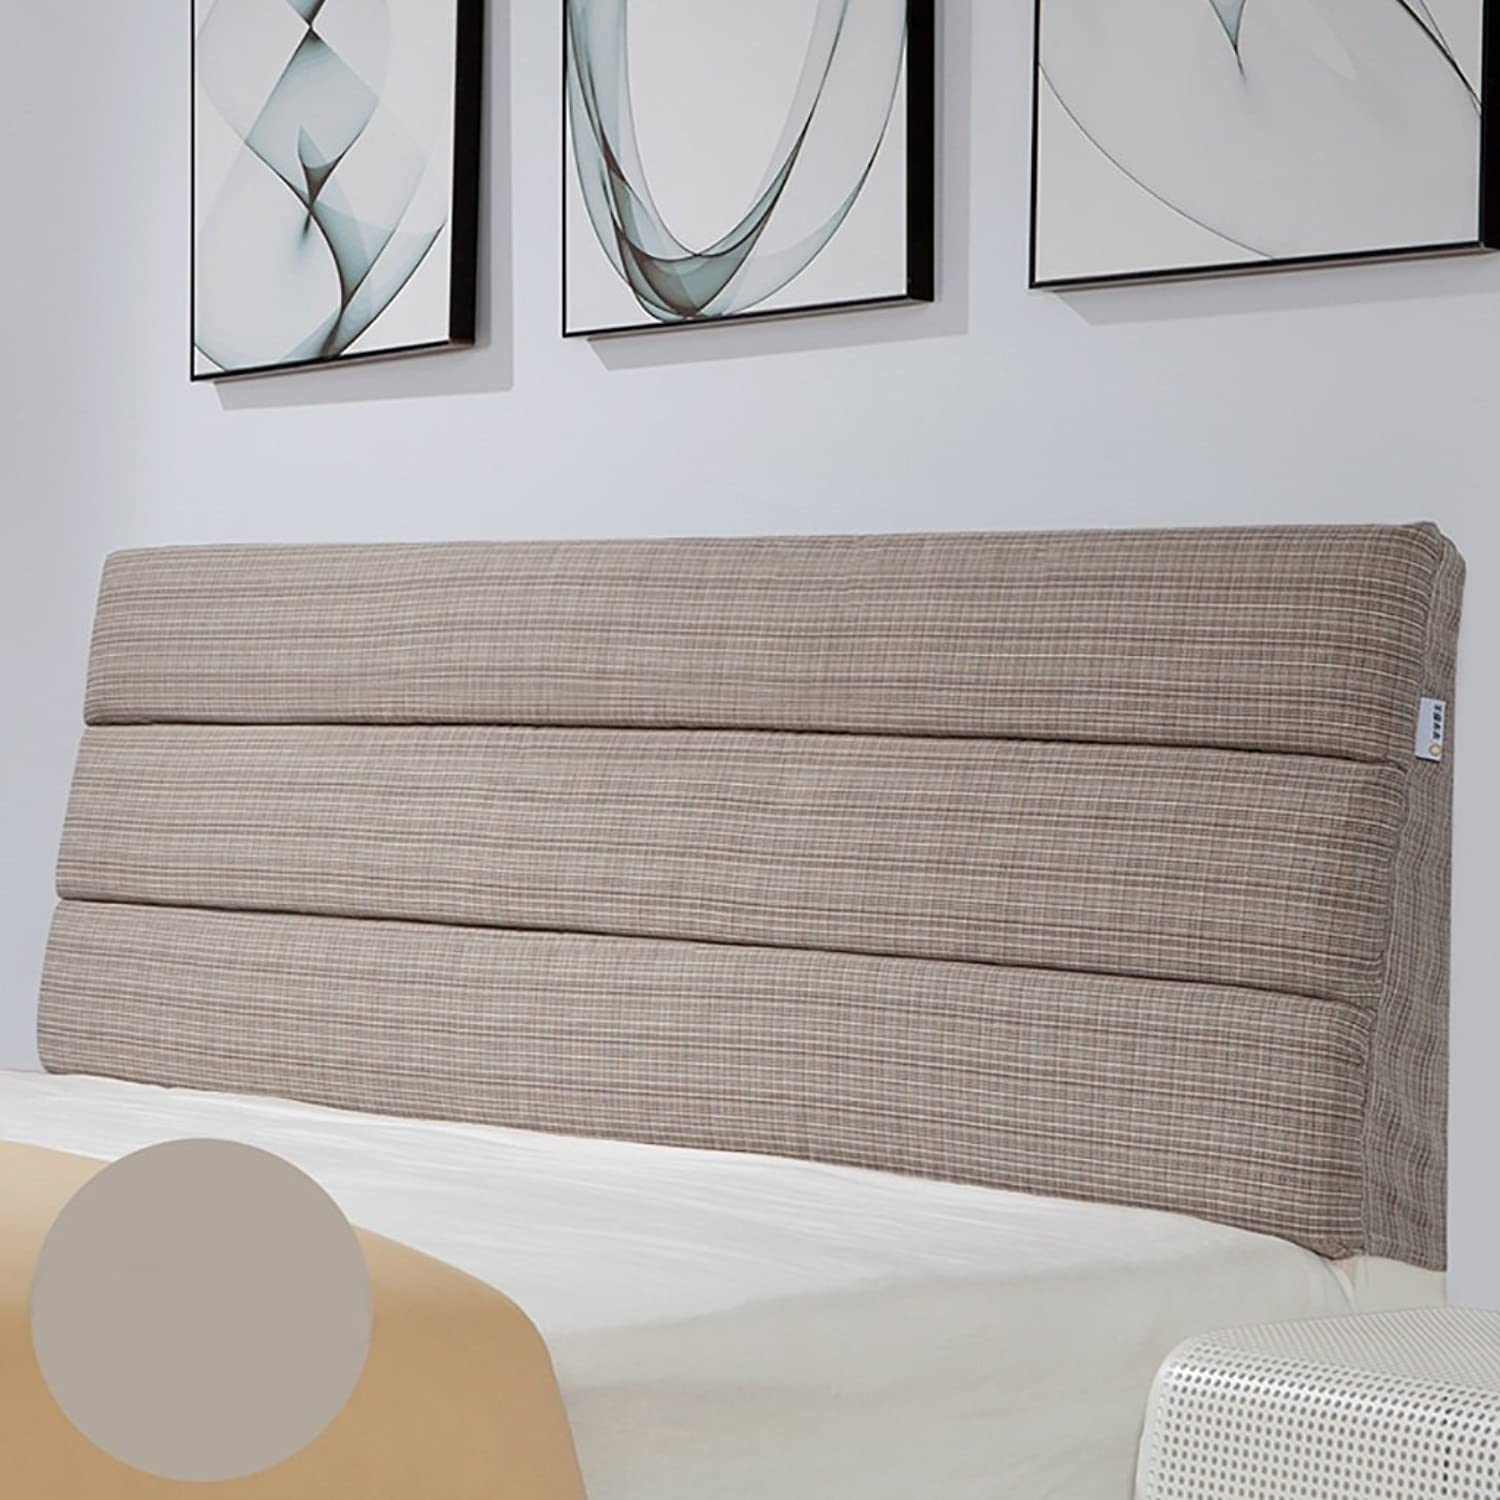 Headboard Bed Backrest Cushion Bed Cushion Bedside Pillow Headboard Cotton Linen Pillow Lumbar Support Detachable 12 Solid colors 5 Sizes